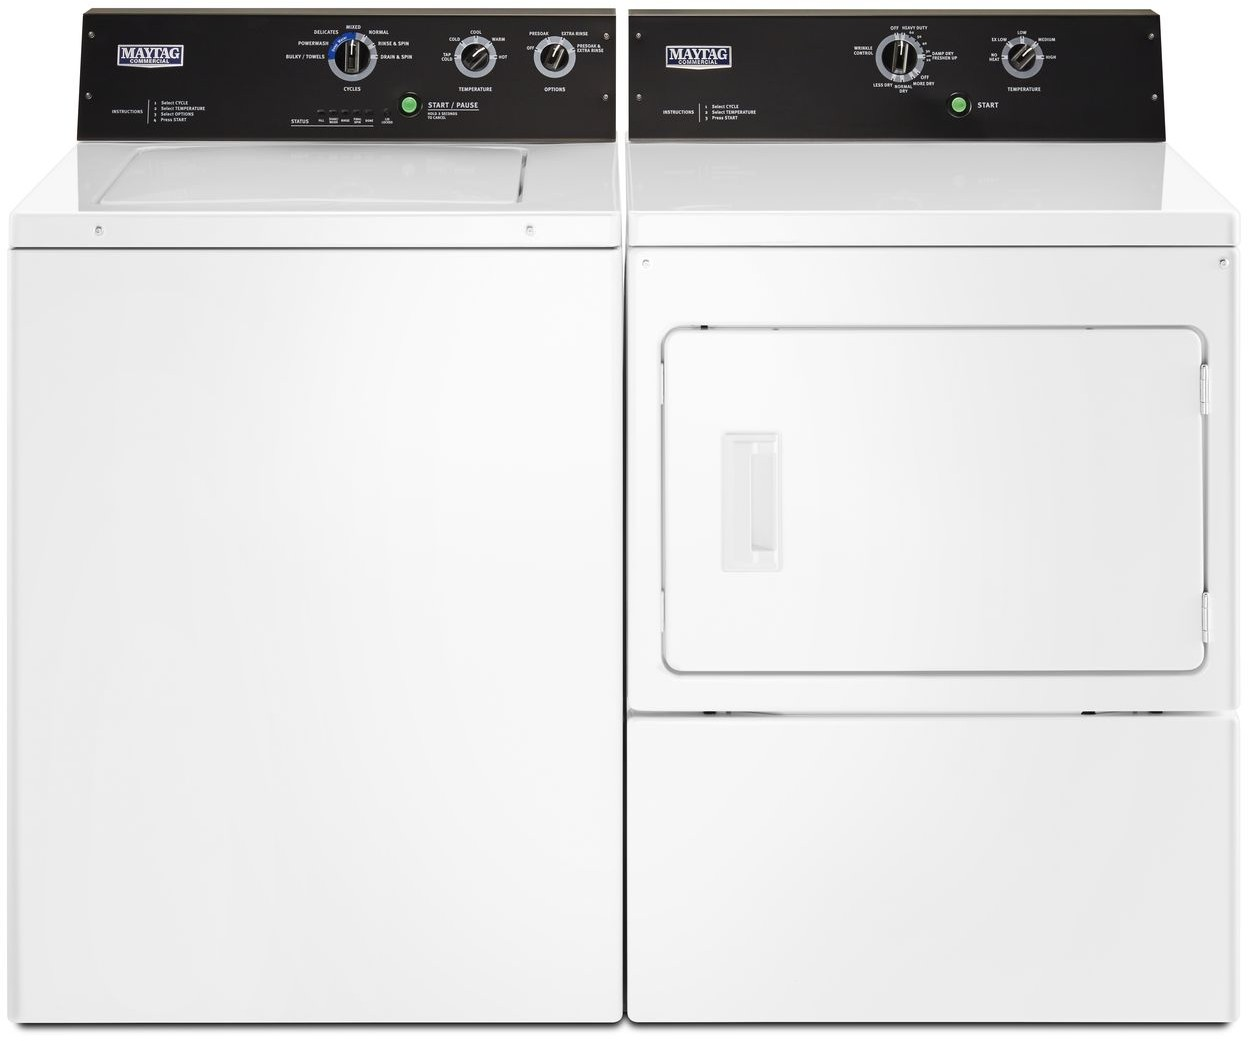 Maytag Mawadrew575 Side By Side Washer Dryer Set With Top Load Washer And Electric Dryer In White